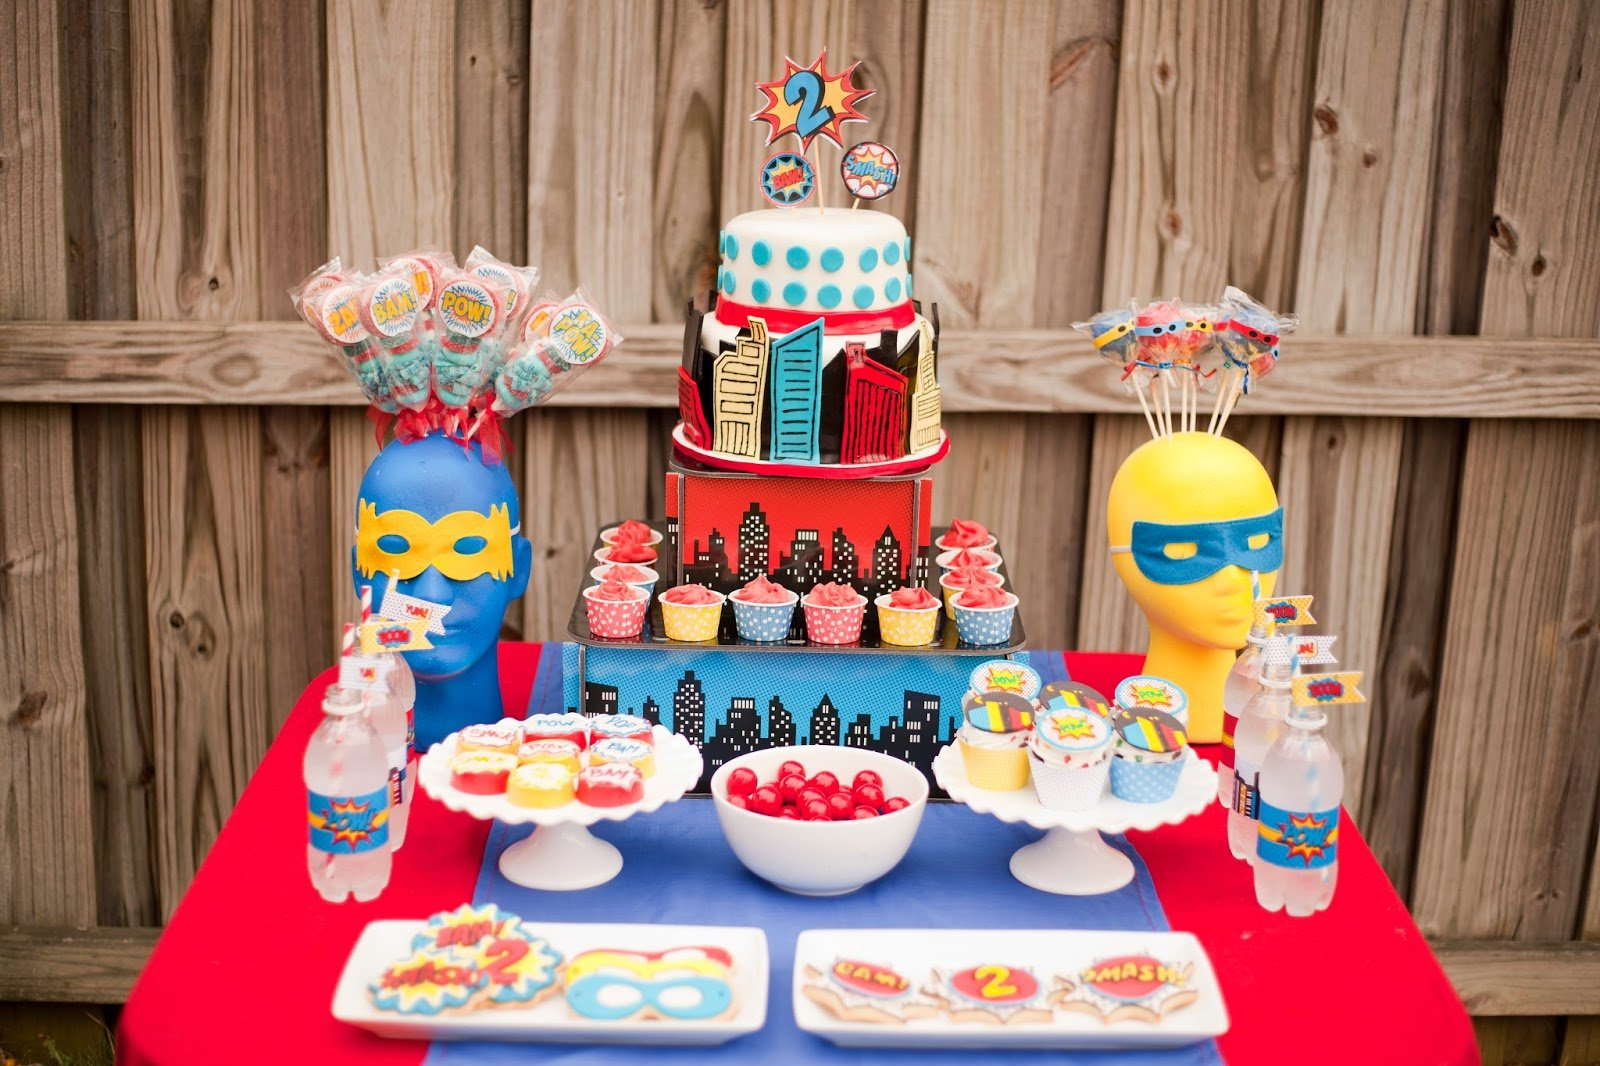 All sorts of superhero party ideas for your little superheroes from playpartypin.com